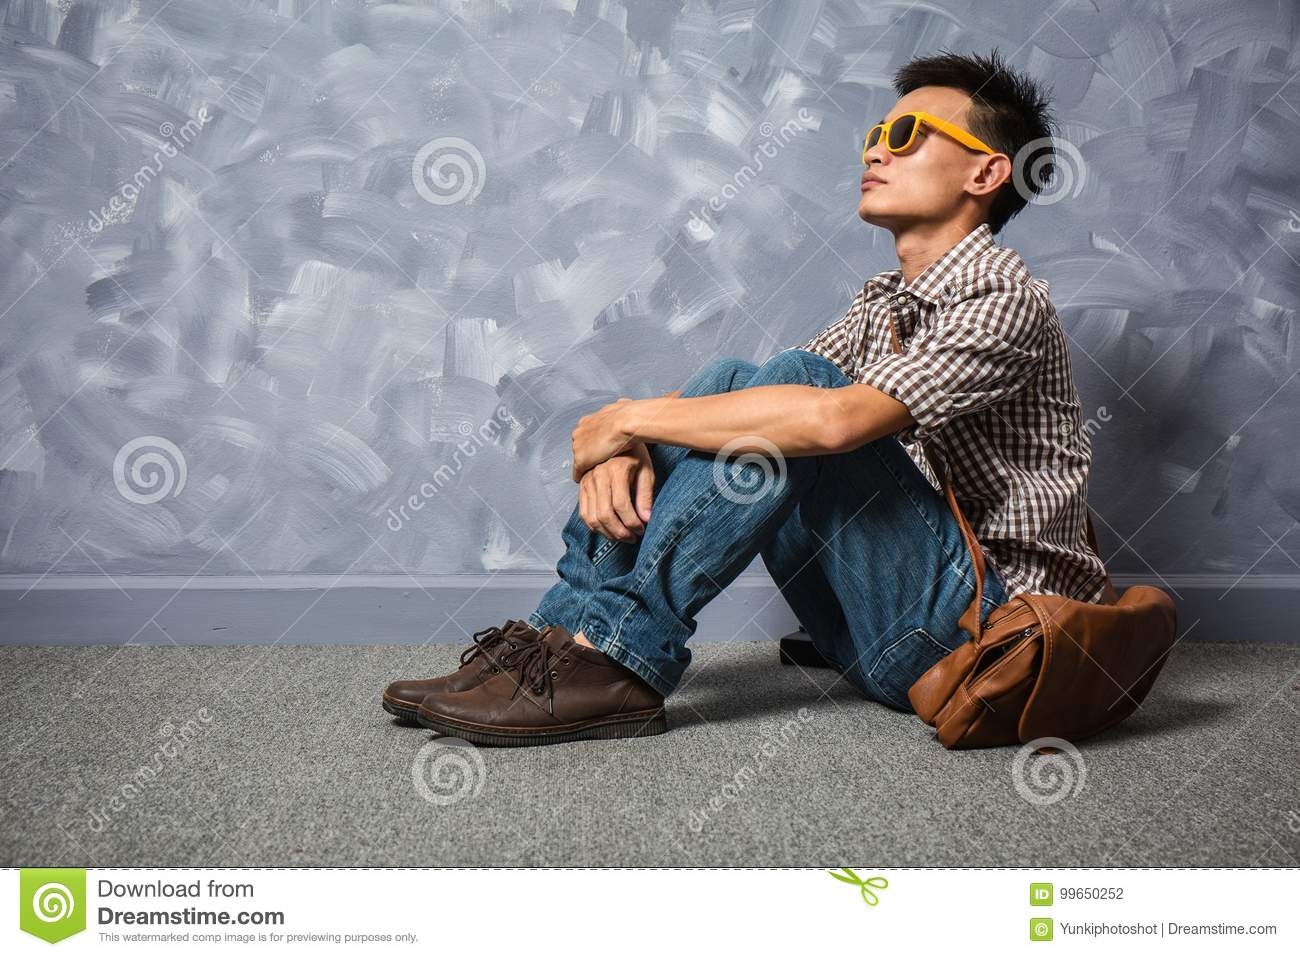 Asian man hipster fashion clothing with glasses and jeans, vintage picture  style.